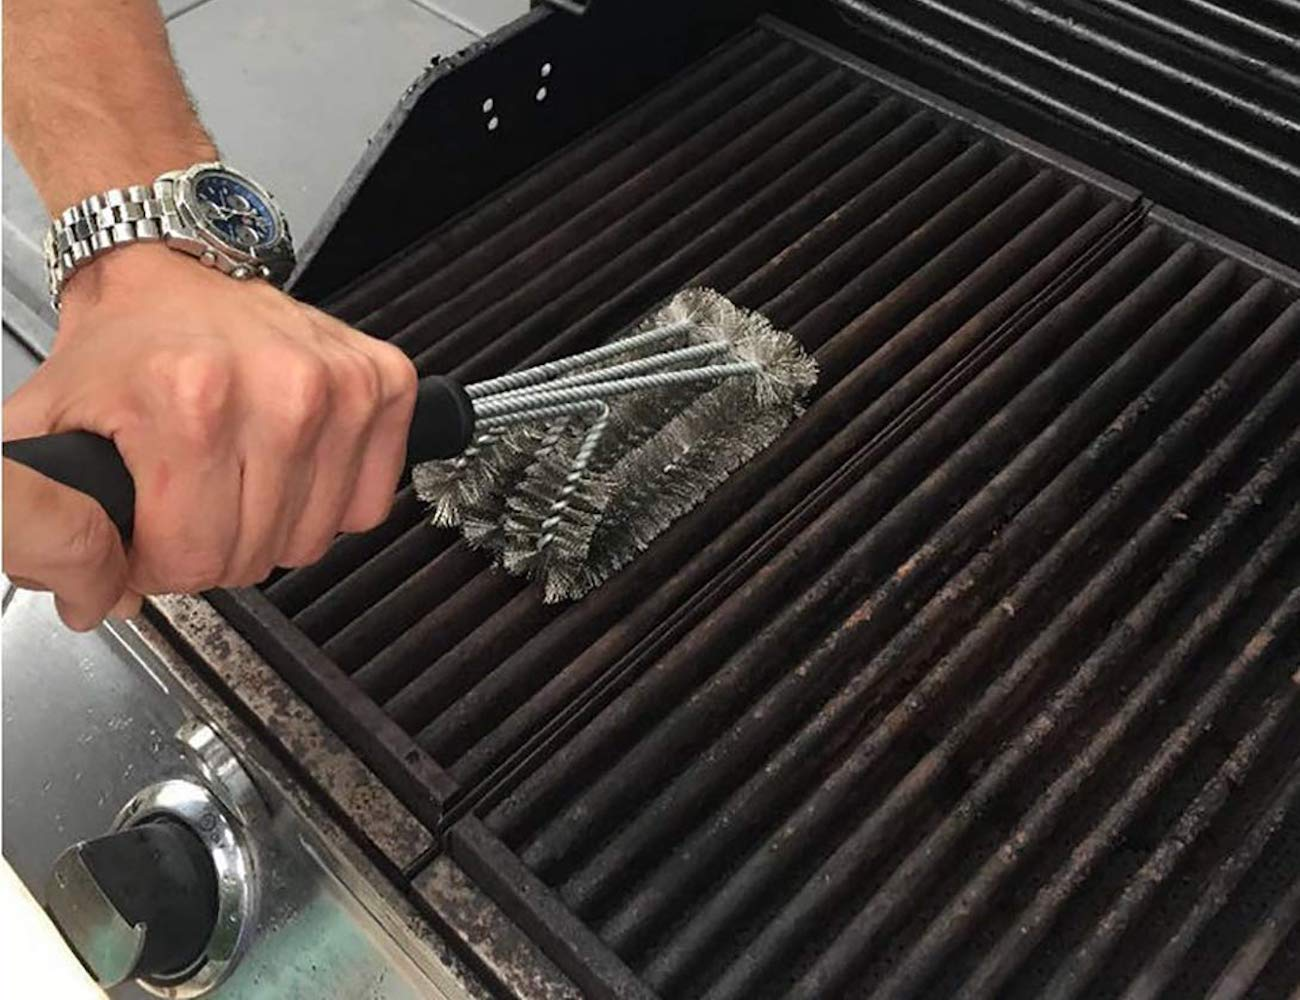 Foya Stainless Steel BBQ Grill Brush is the perfect 3-in-1 cooking tool